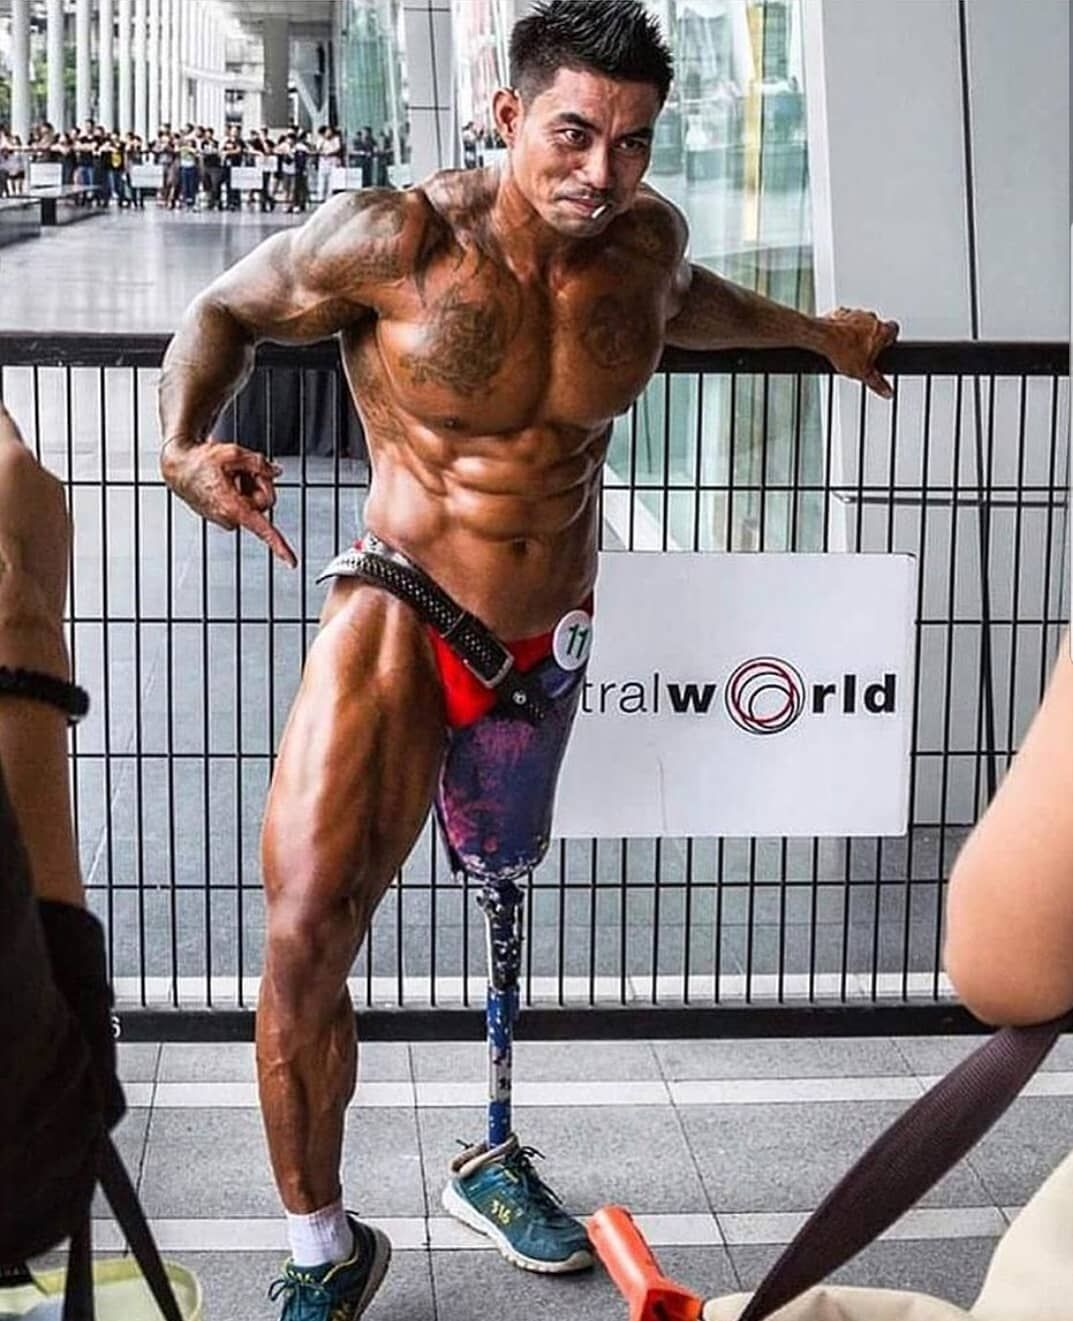 Never Give Up Comment Below Account Owner Singhfitness Looking For A Sponsorship Sports Wear Available Www Finesseathletes Co Fitness Body Nutricion